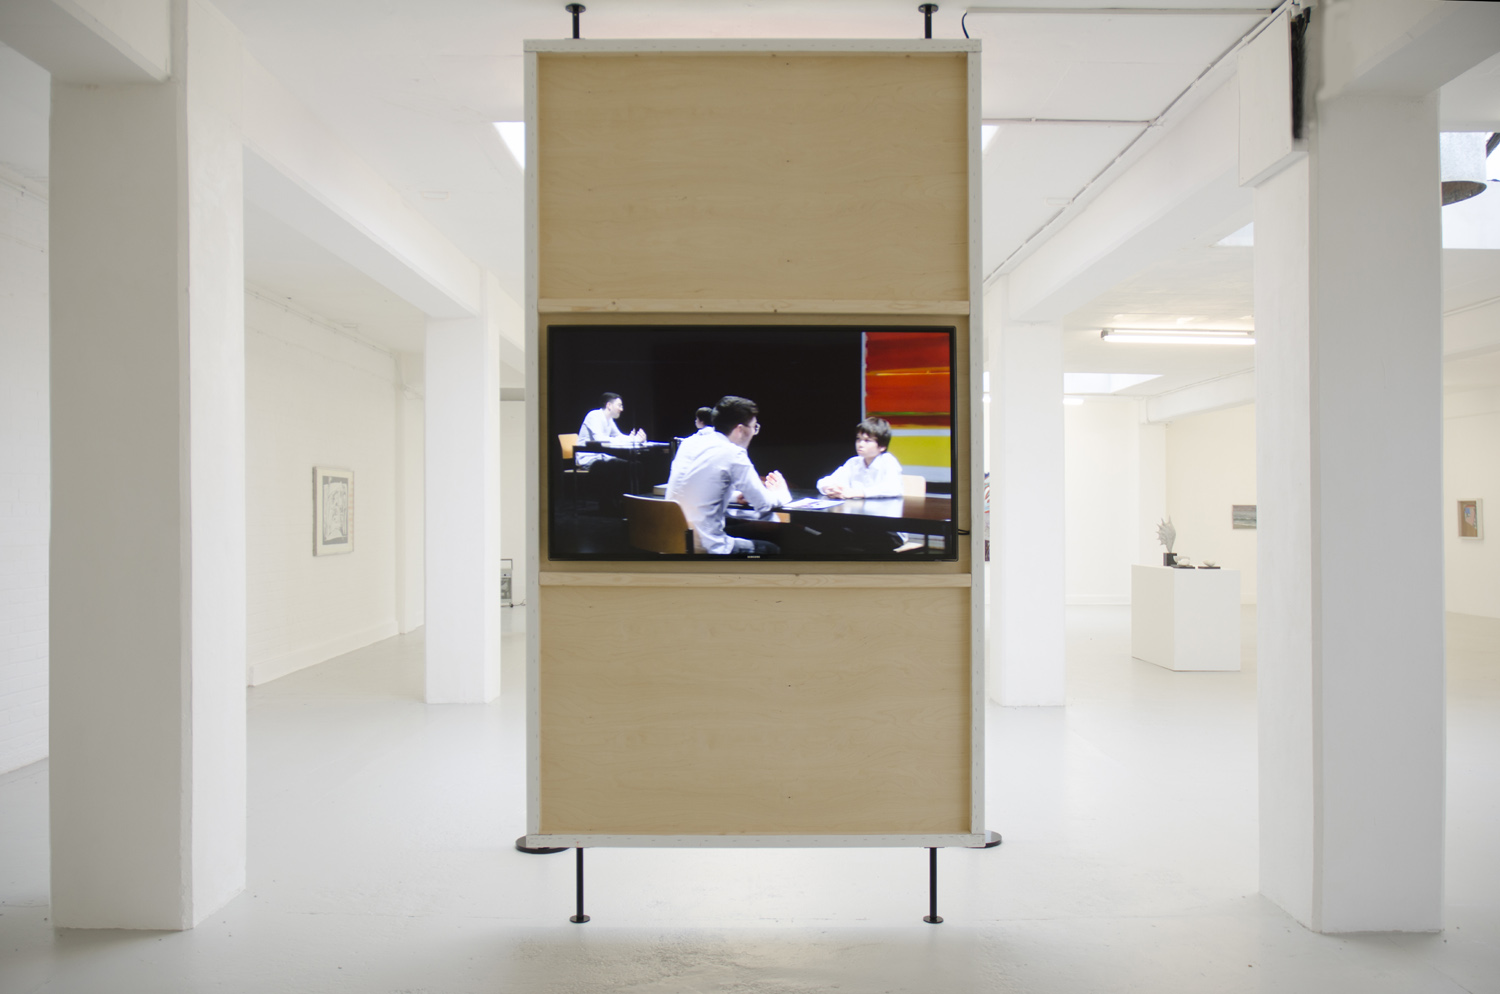 Simon Fujiwara, The Mirror Stage, 2009 - ongoing,mixed media,dimensions variable, video 27:41 minutes